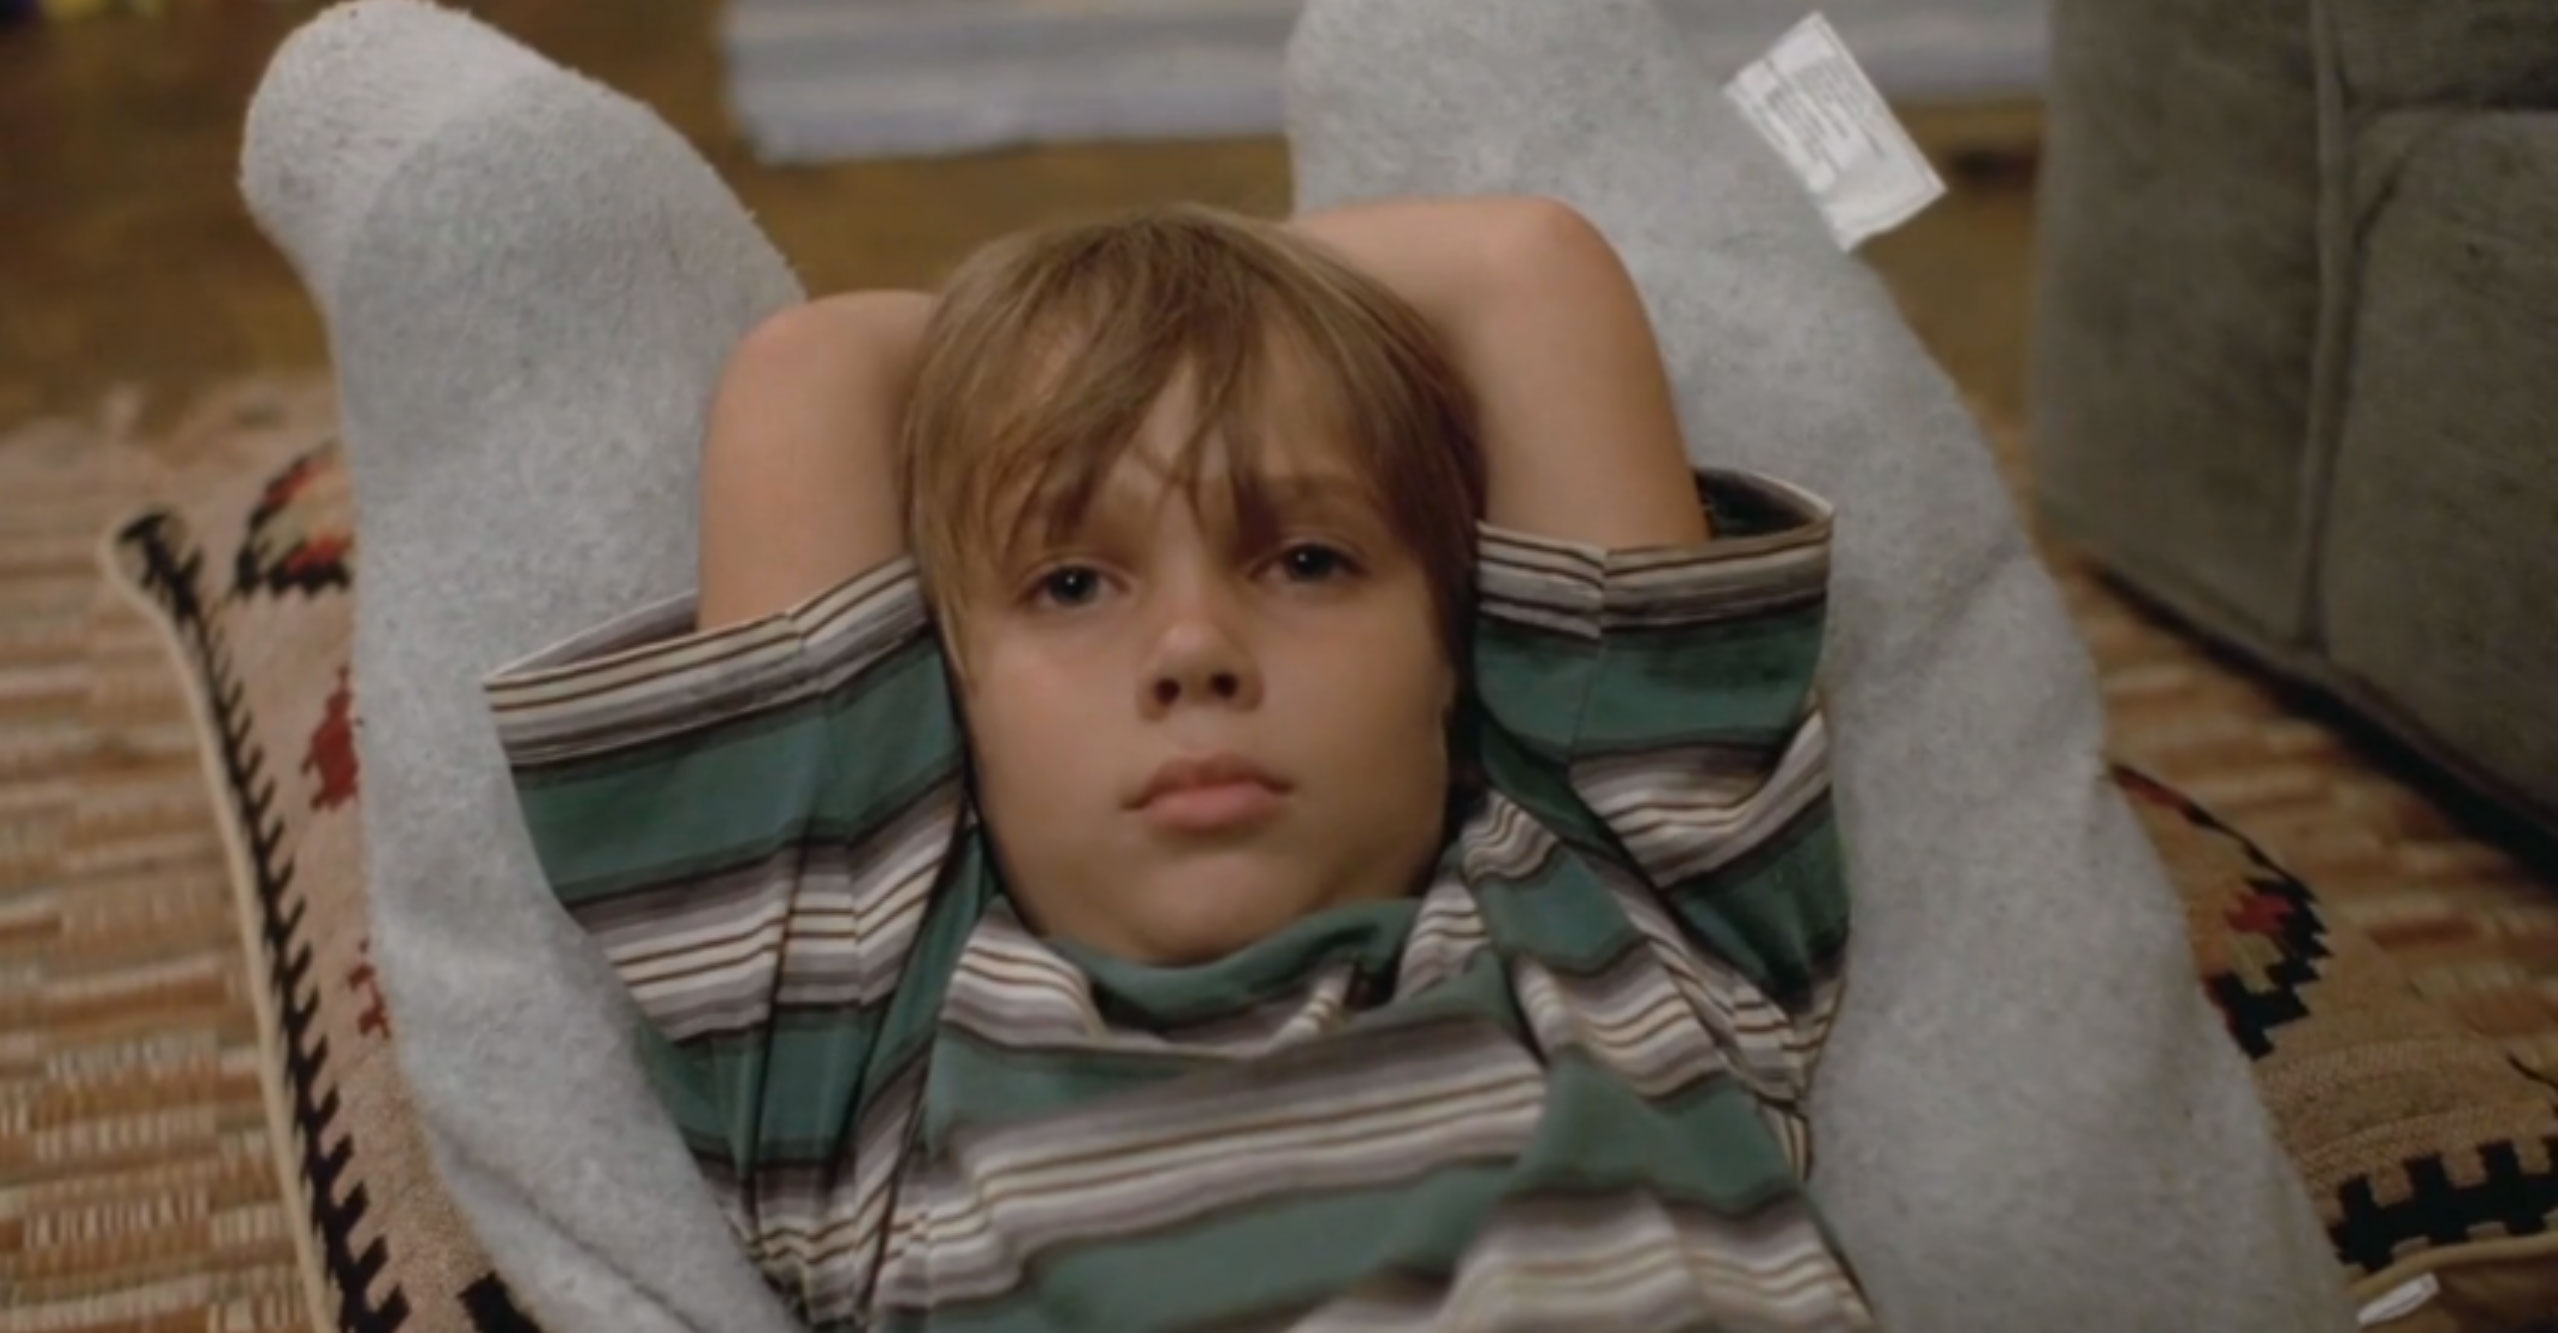 SXBlog: The 13th Year of 'Boyhood' - The Post-Production